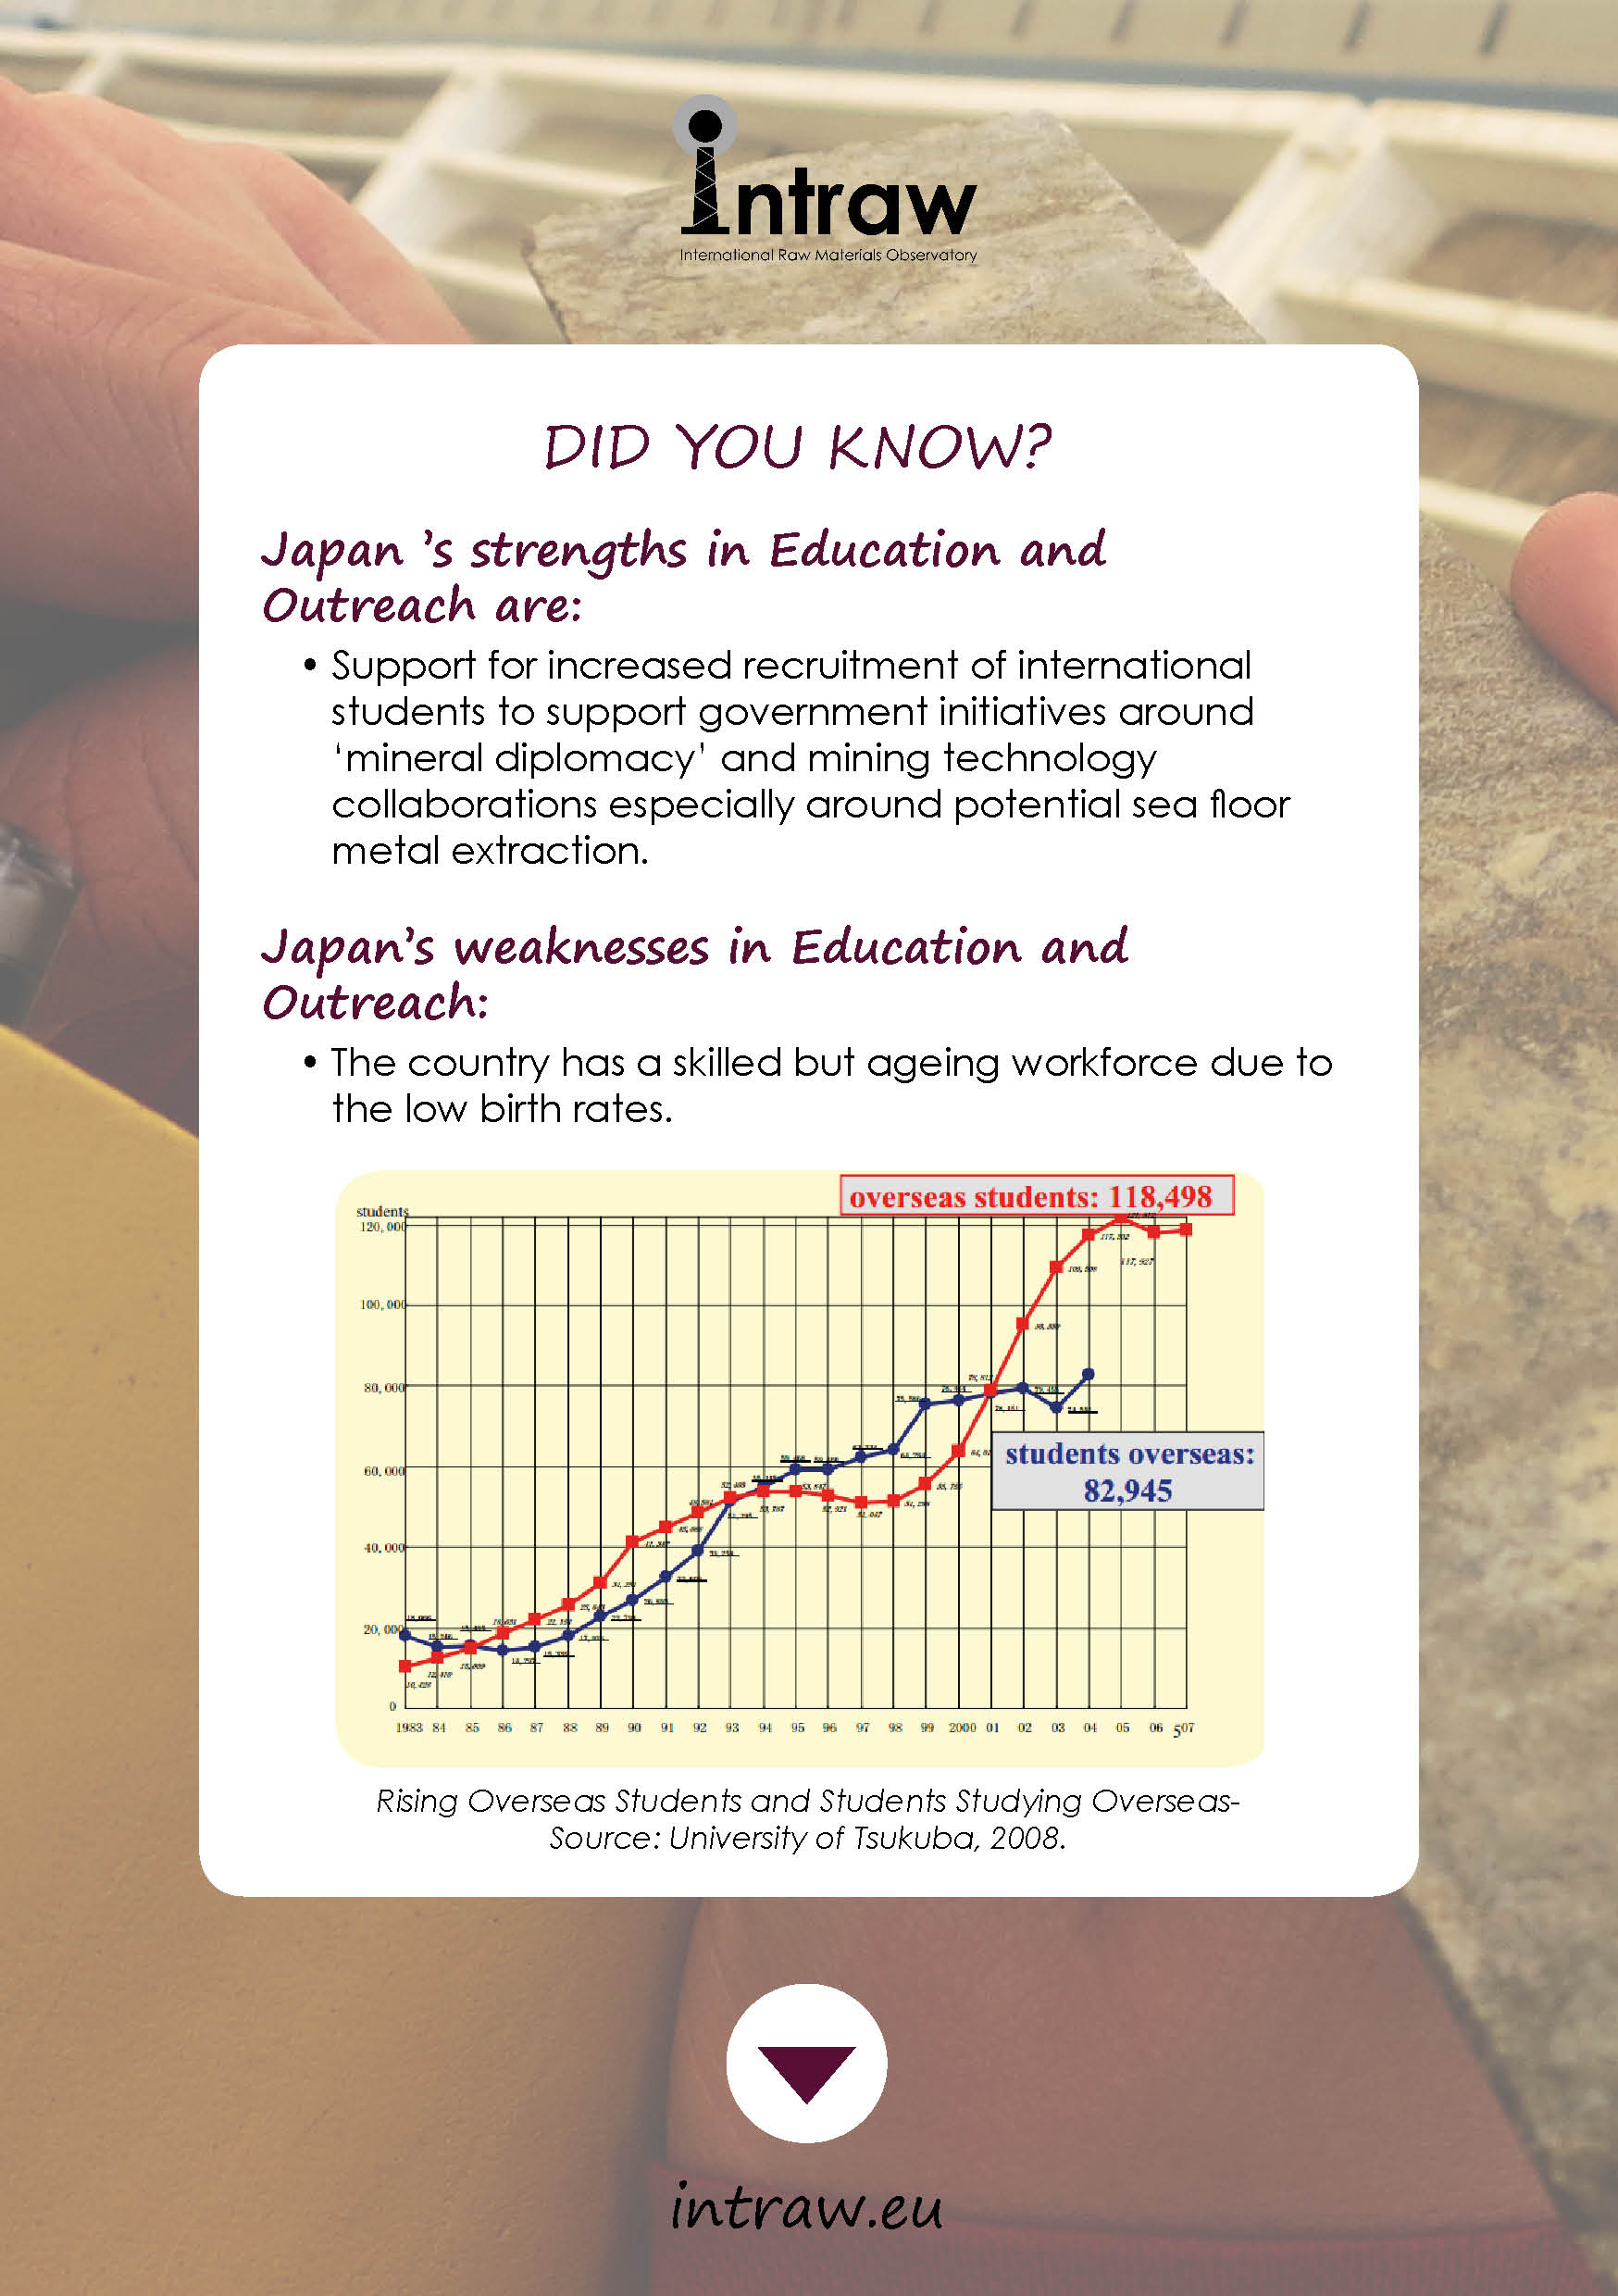 Check how Japan is doing on #EducationAndOutreach, with a look at its strengths and weaknesses